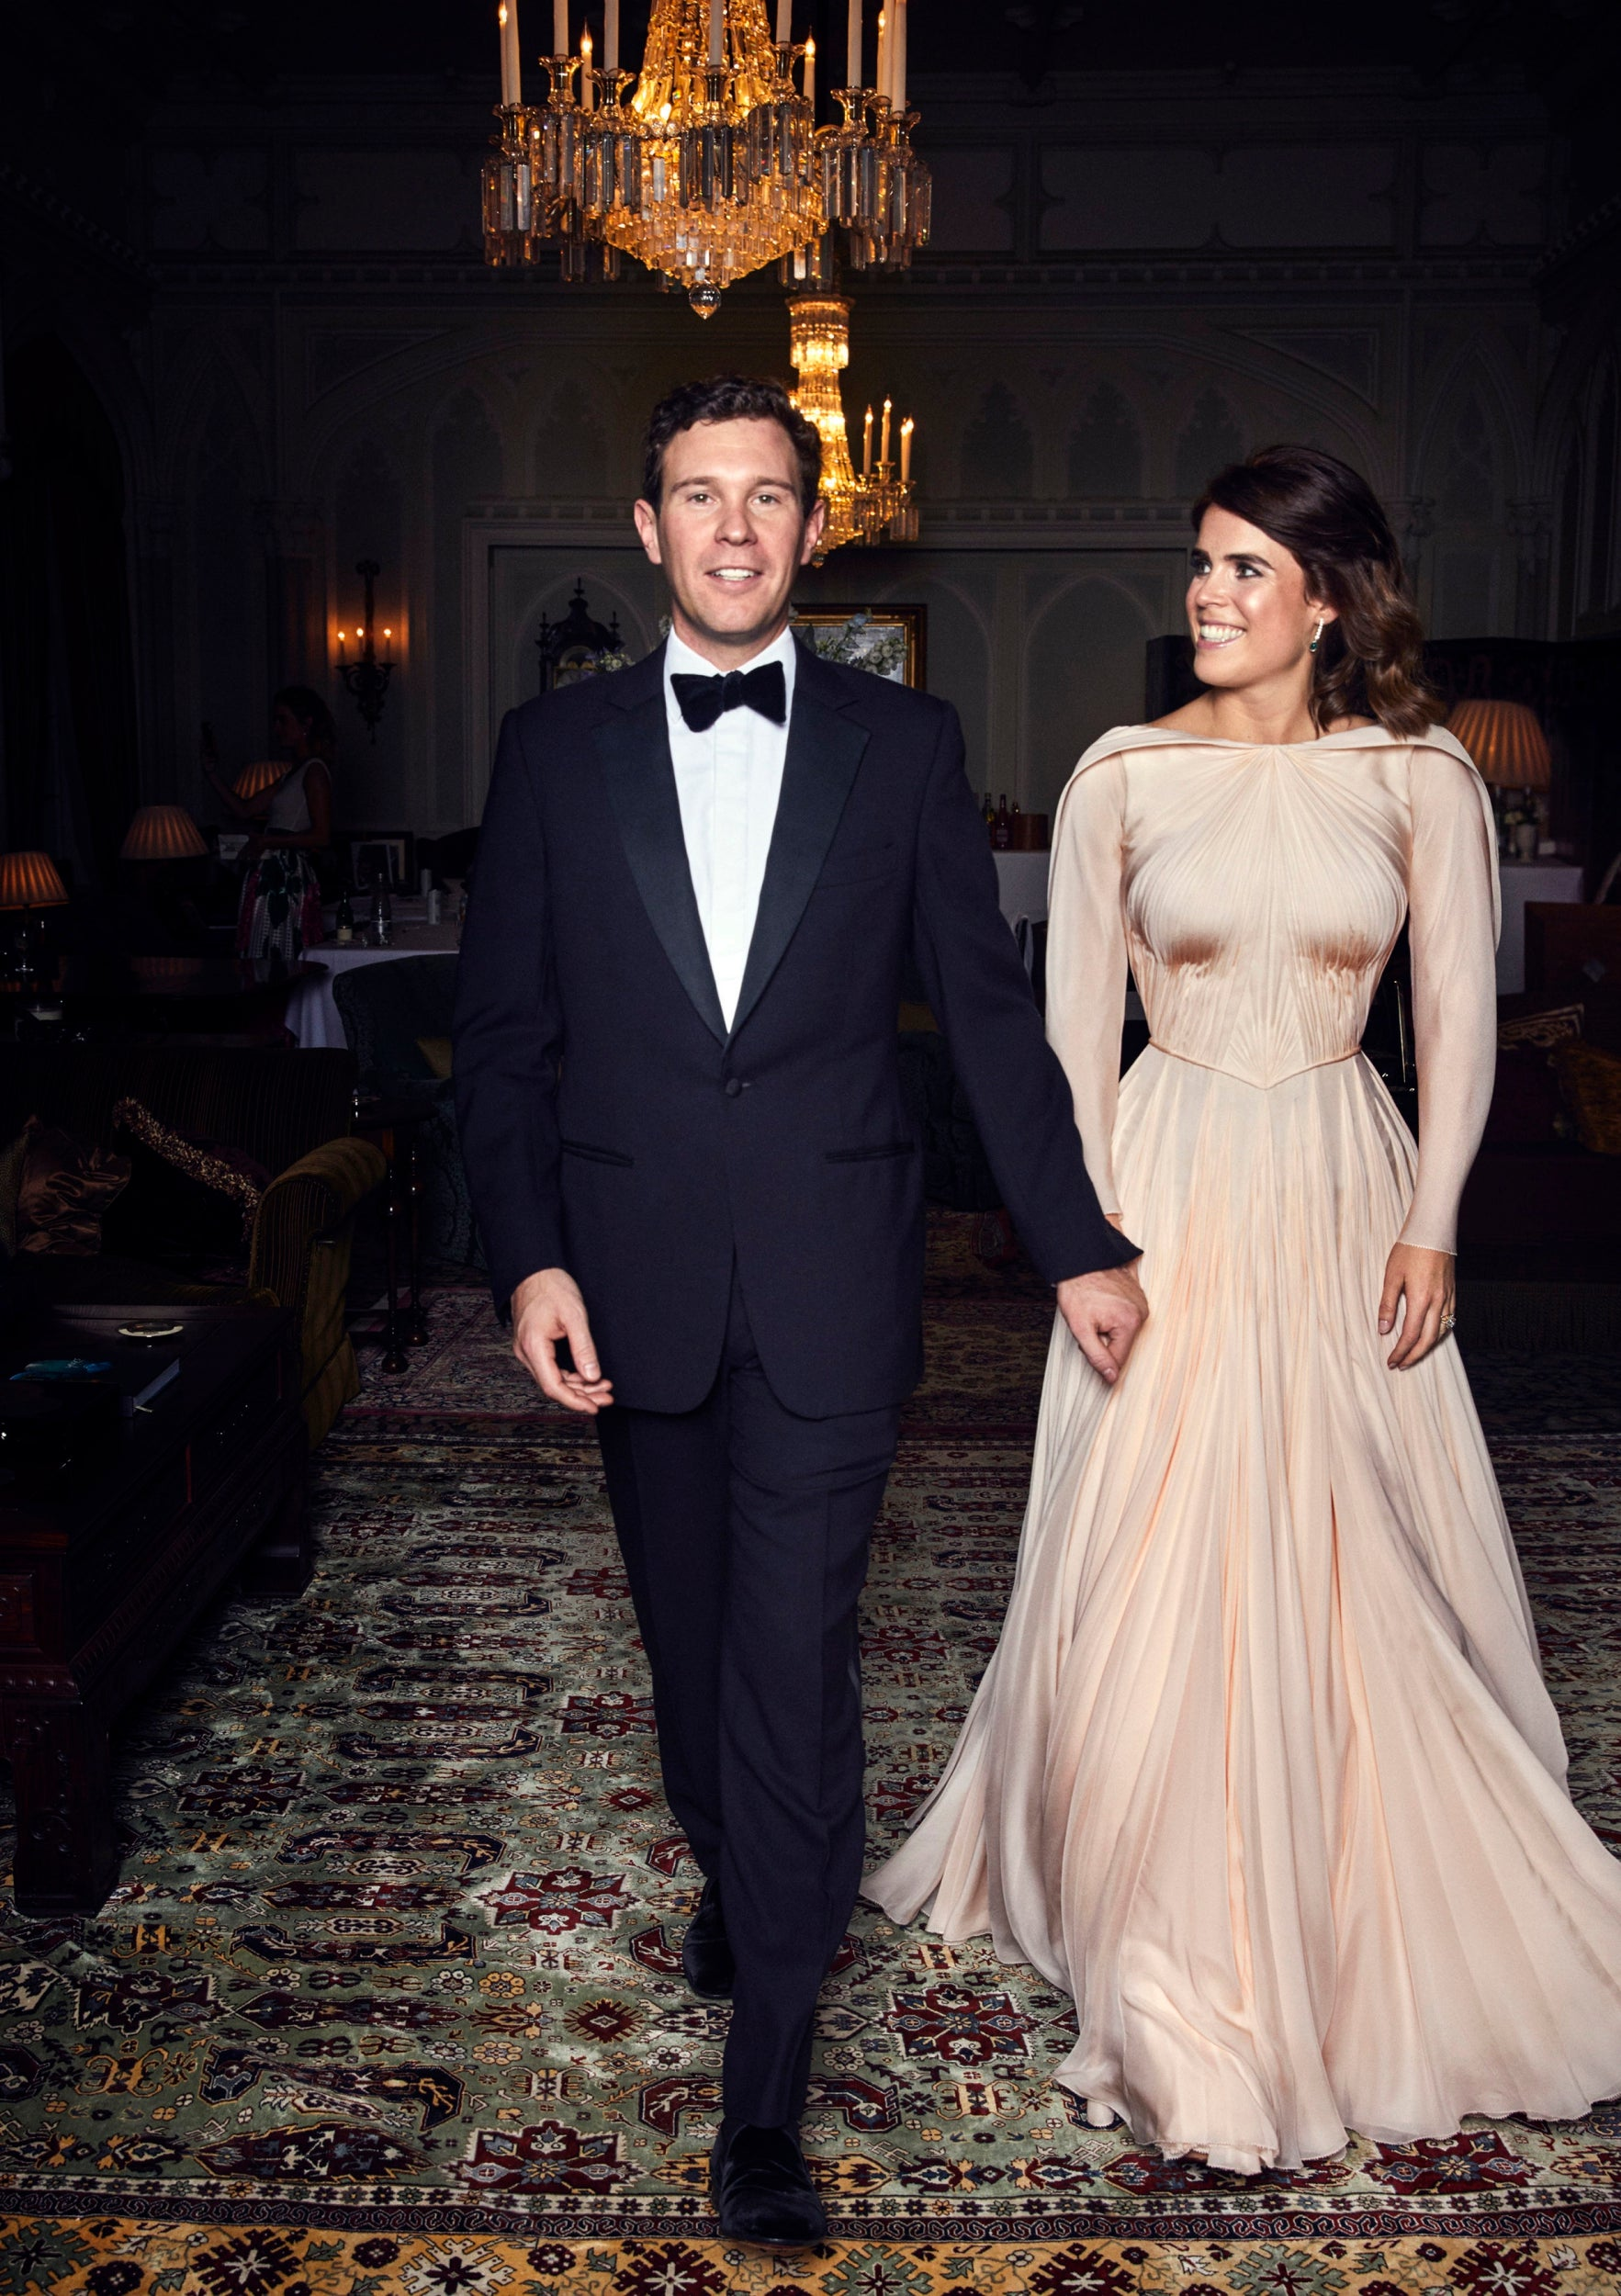 Official Royal Wedding Pictures.Royal Wedding Princess Eugenie And Jack Brooksbank Release Official